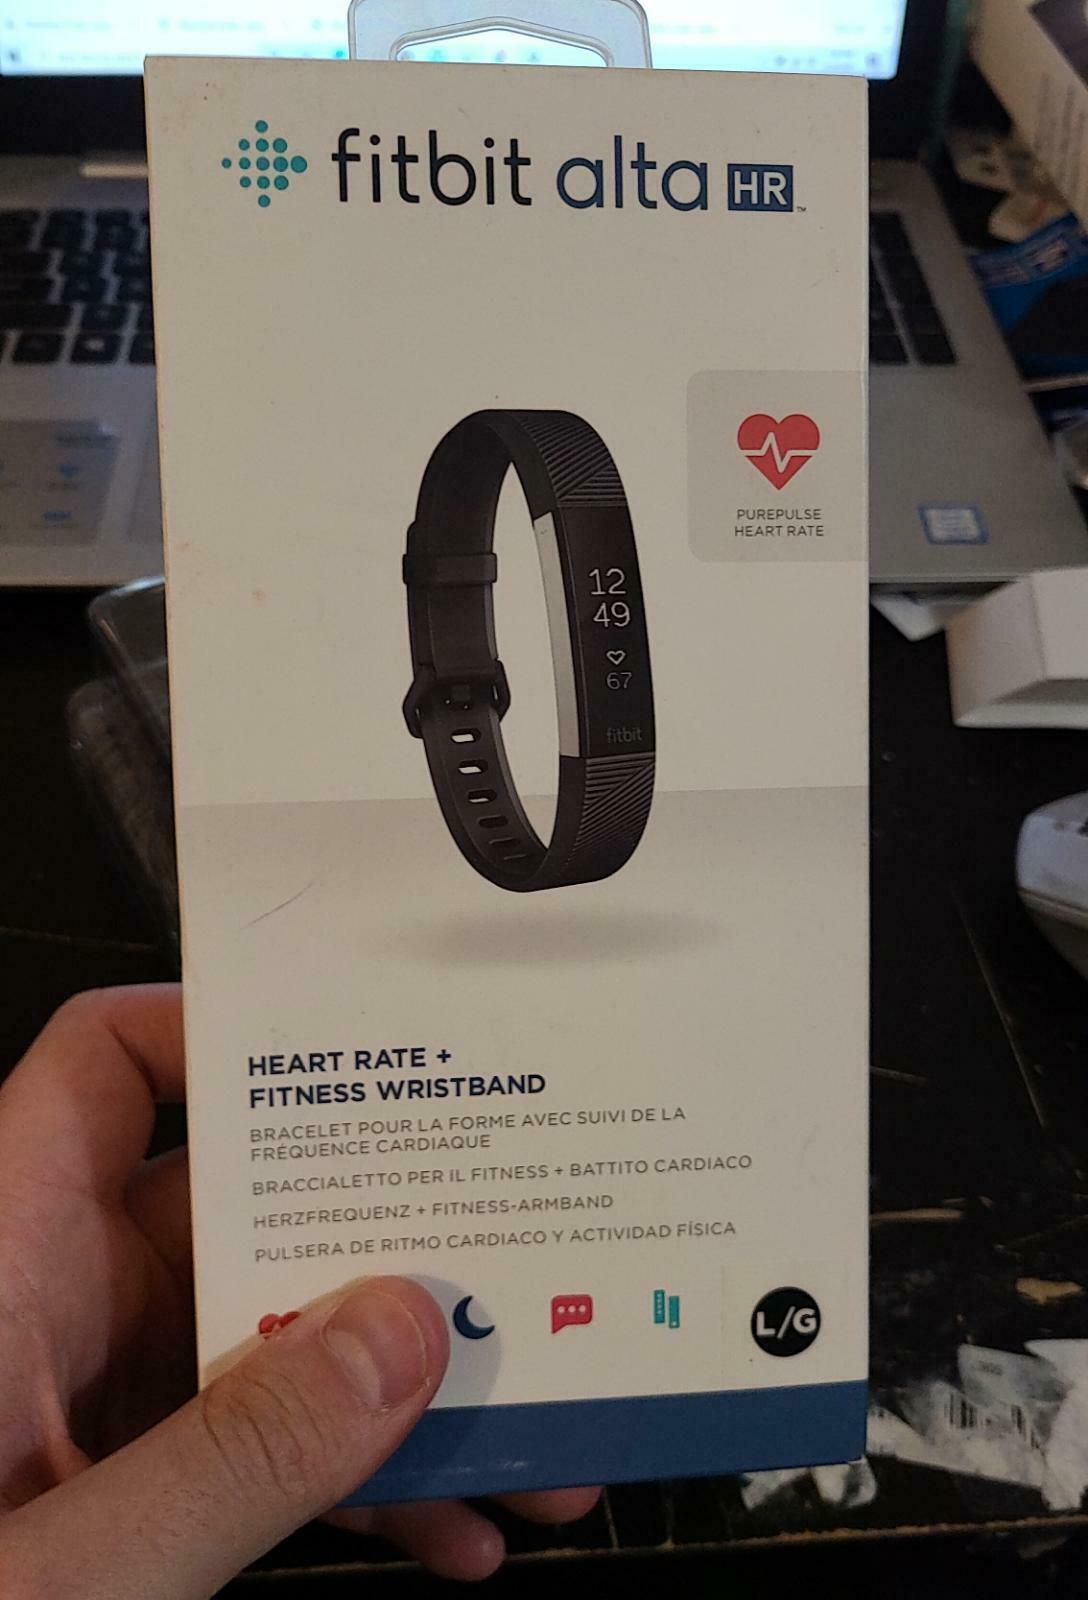 Fitbit Alta HR Activity Tracker + Heart Rate   Large   Black Brand New Fitness activity alta black brand Featured fitbit heart large new rate tracker